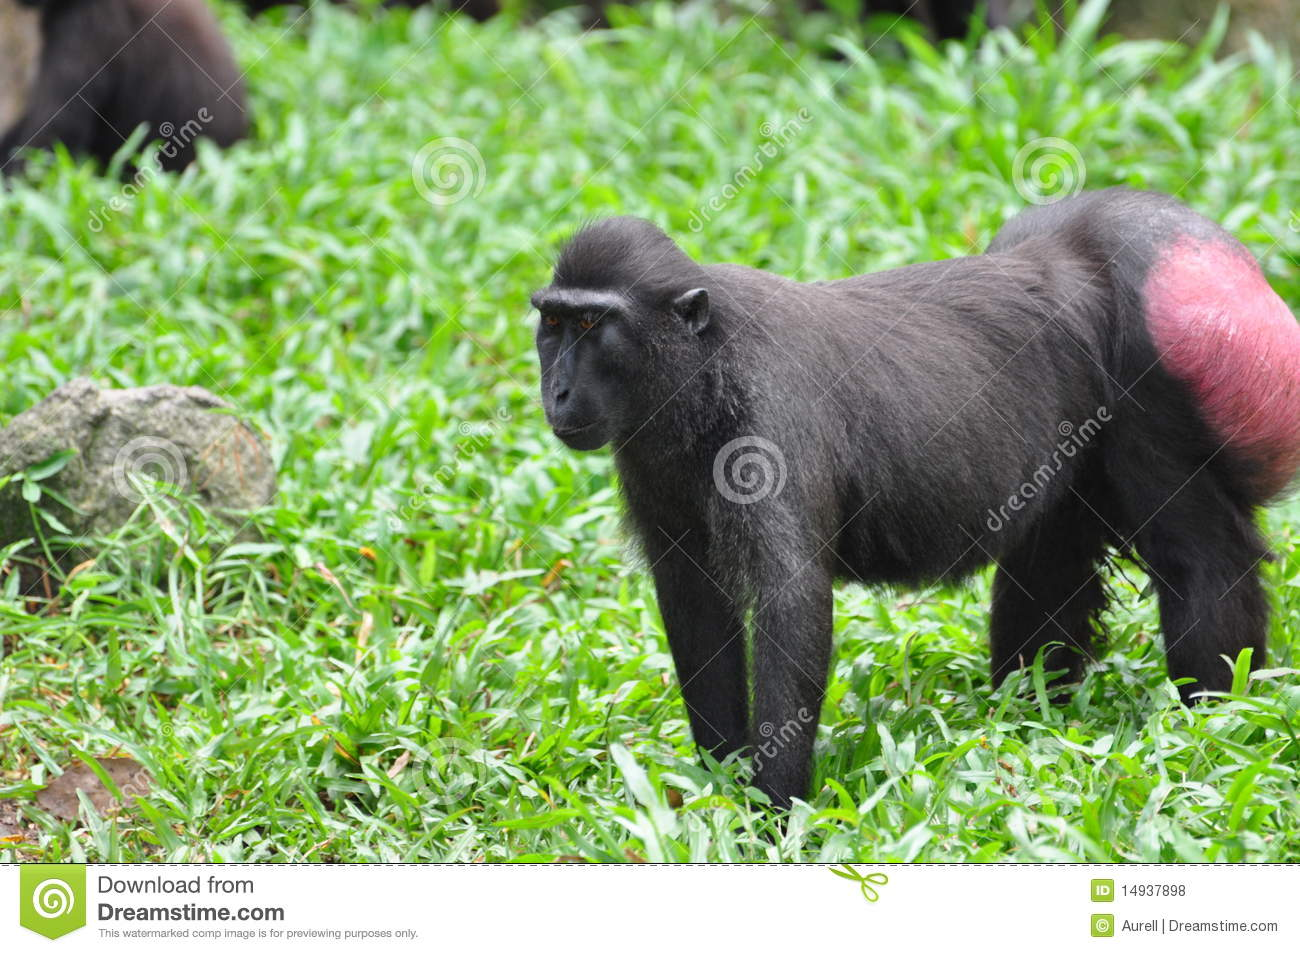 Crested Black Macaque clipart #18, Download drawings